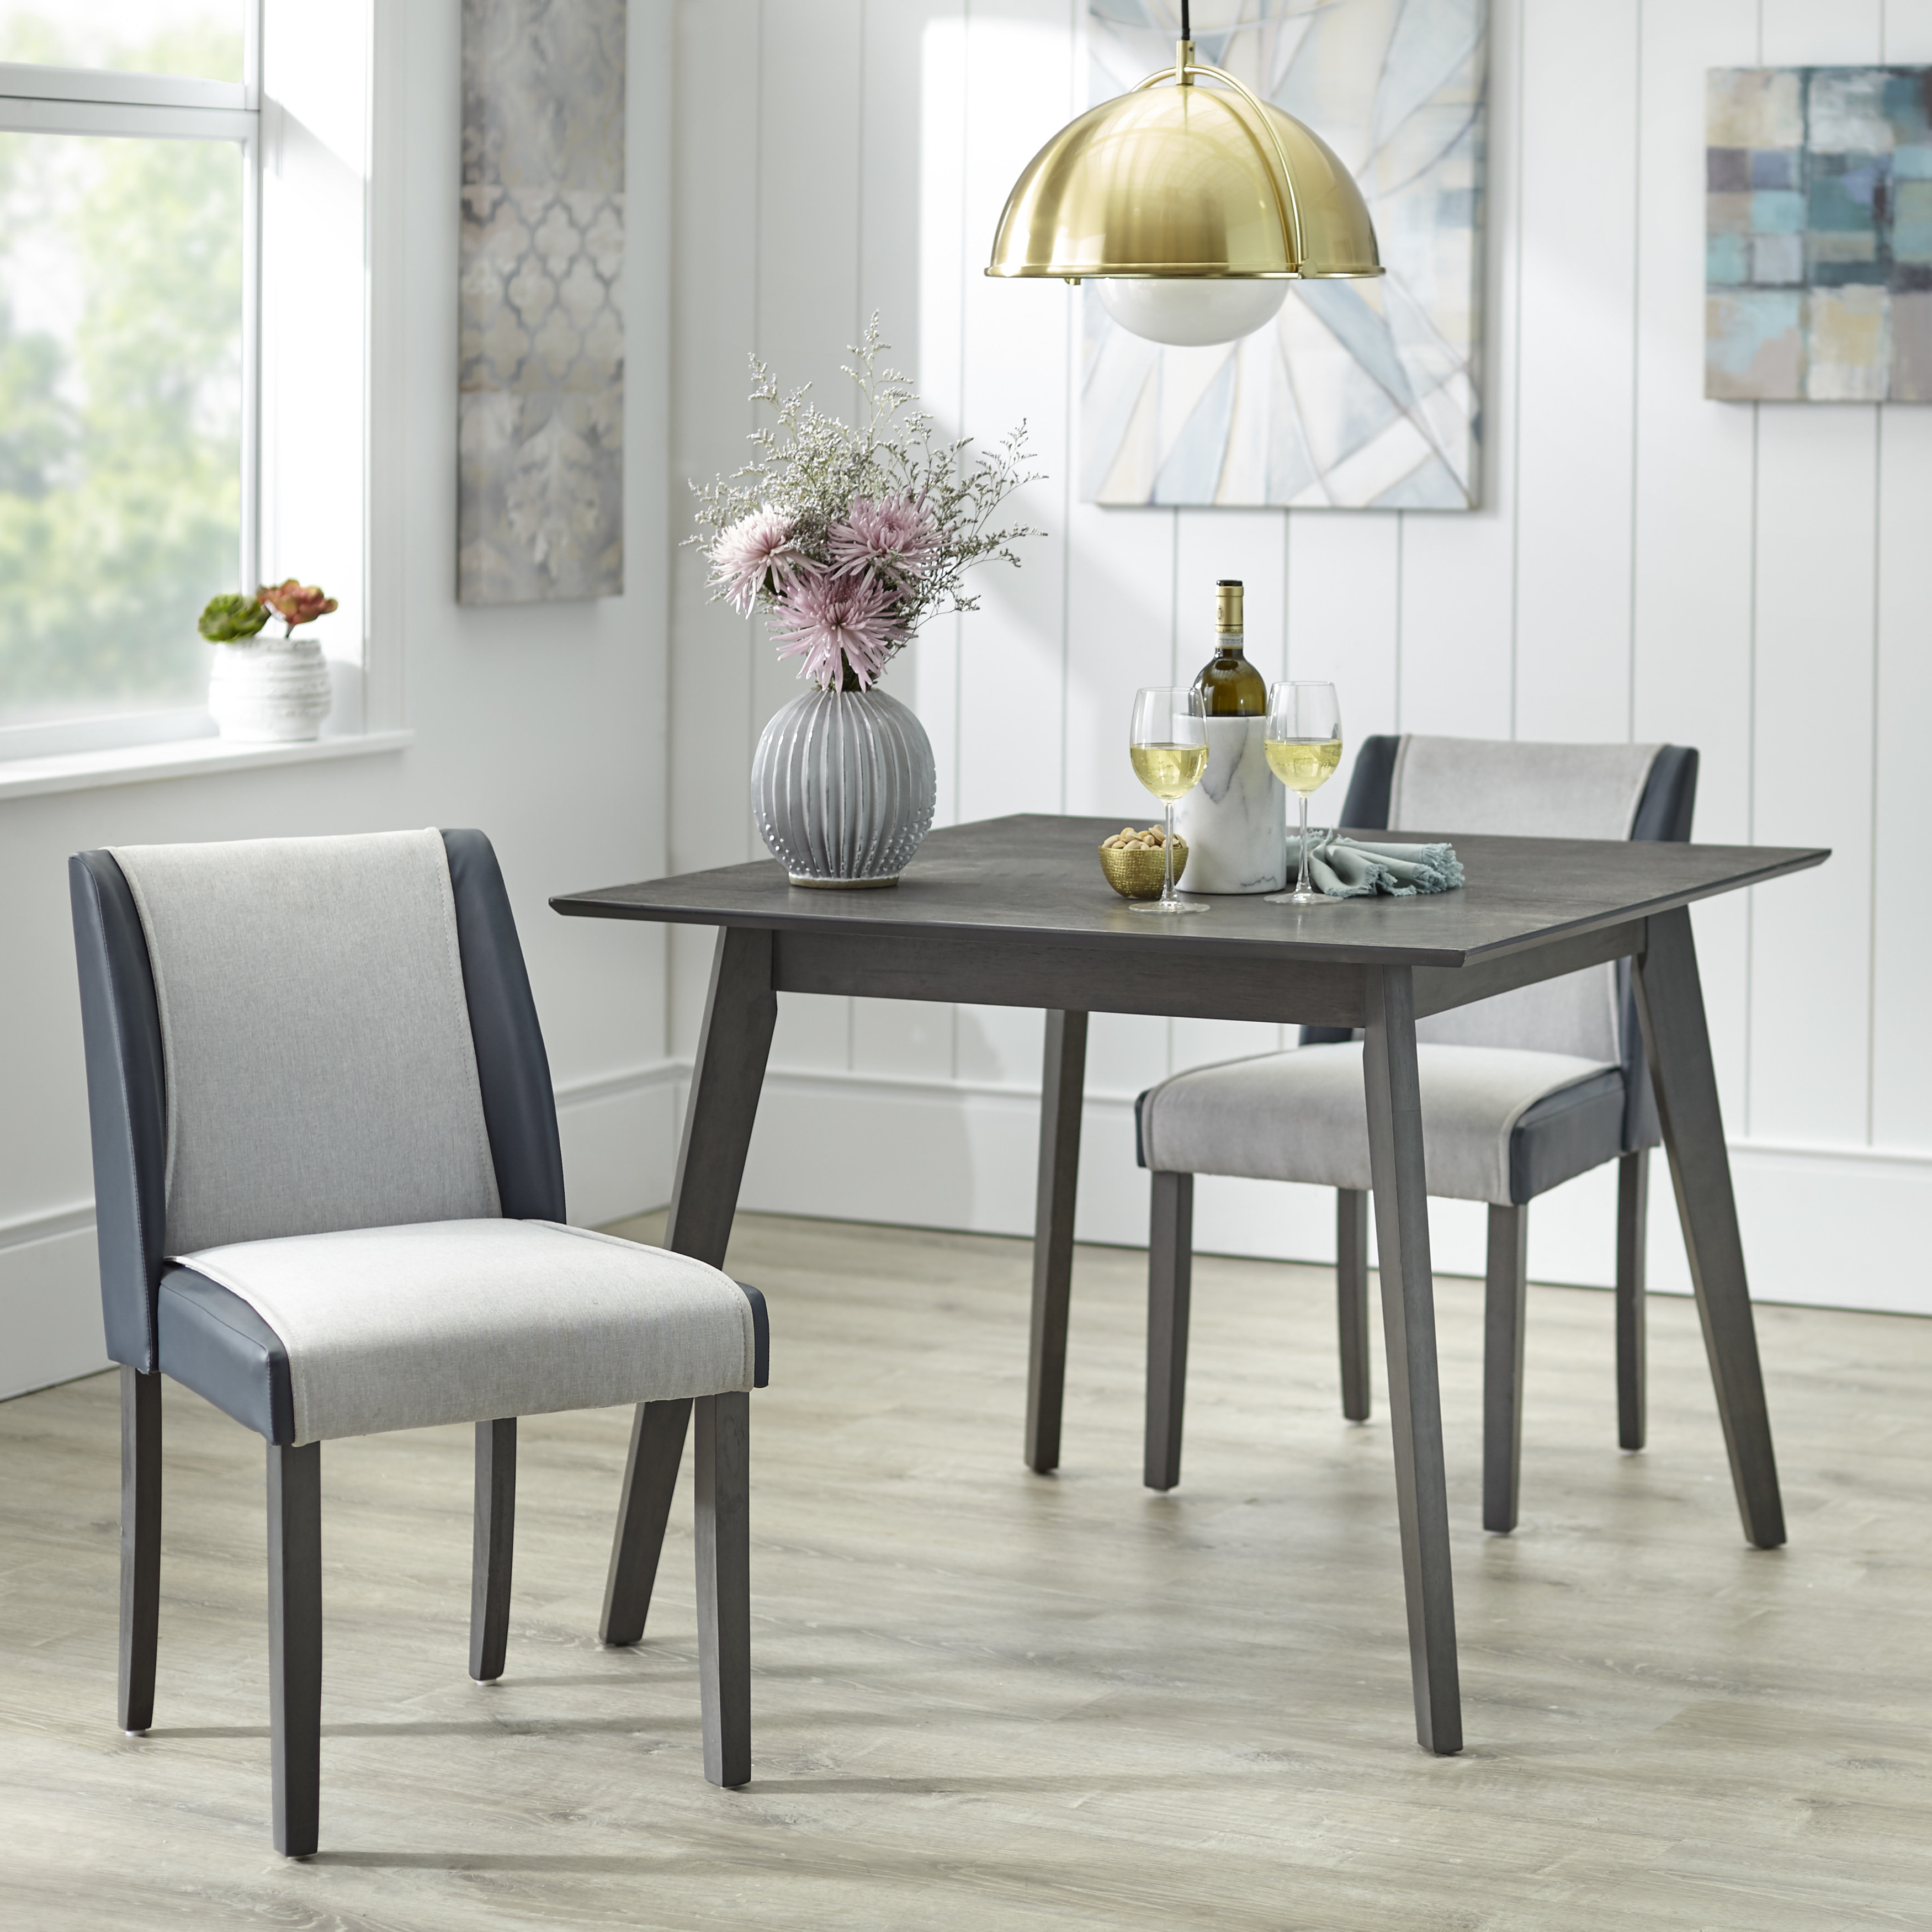 Baillie 3 Piece Dining Sets Regarding Most Recent Beckley 3 Piece Dining Set (View 3 of 20)